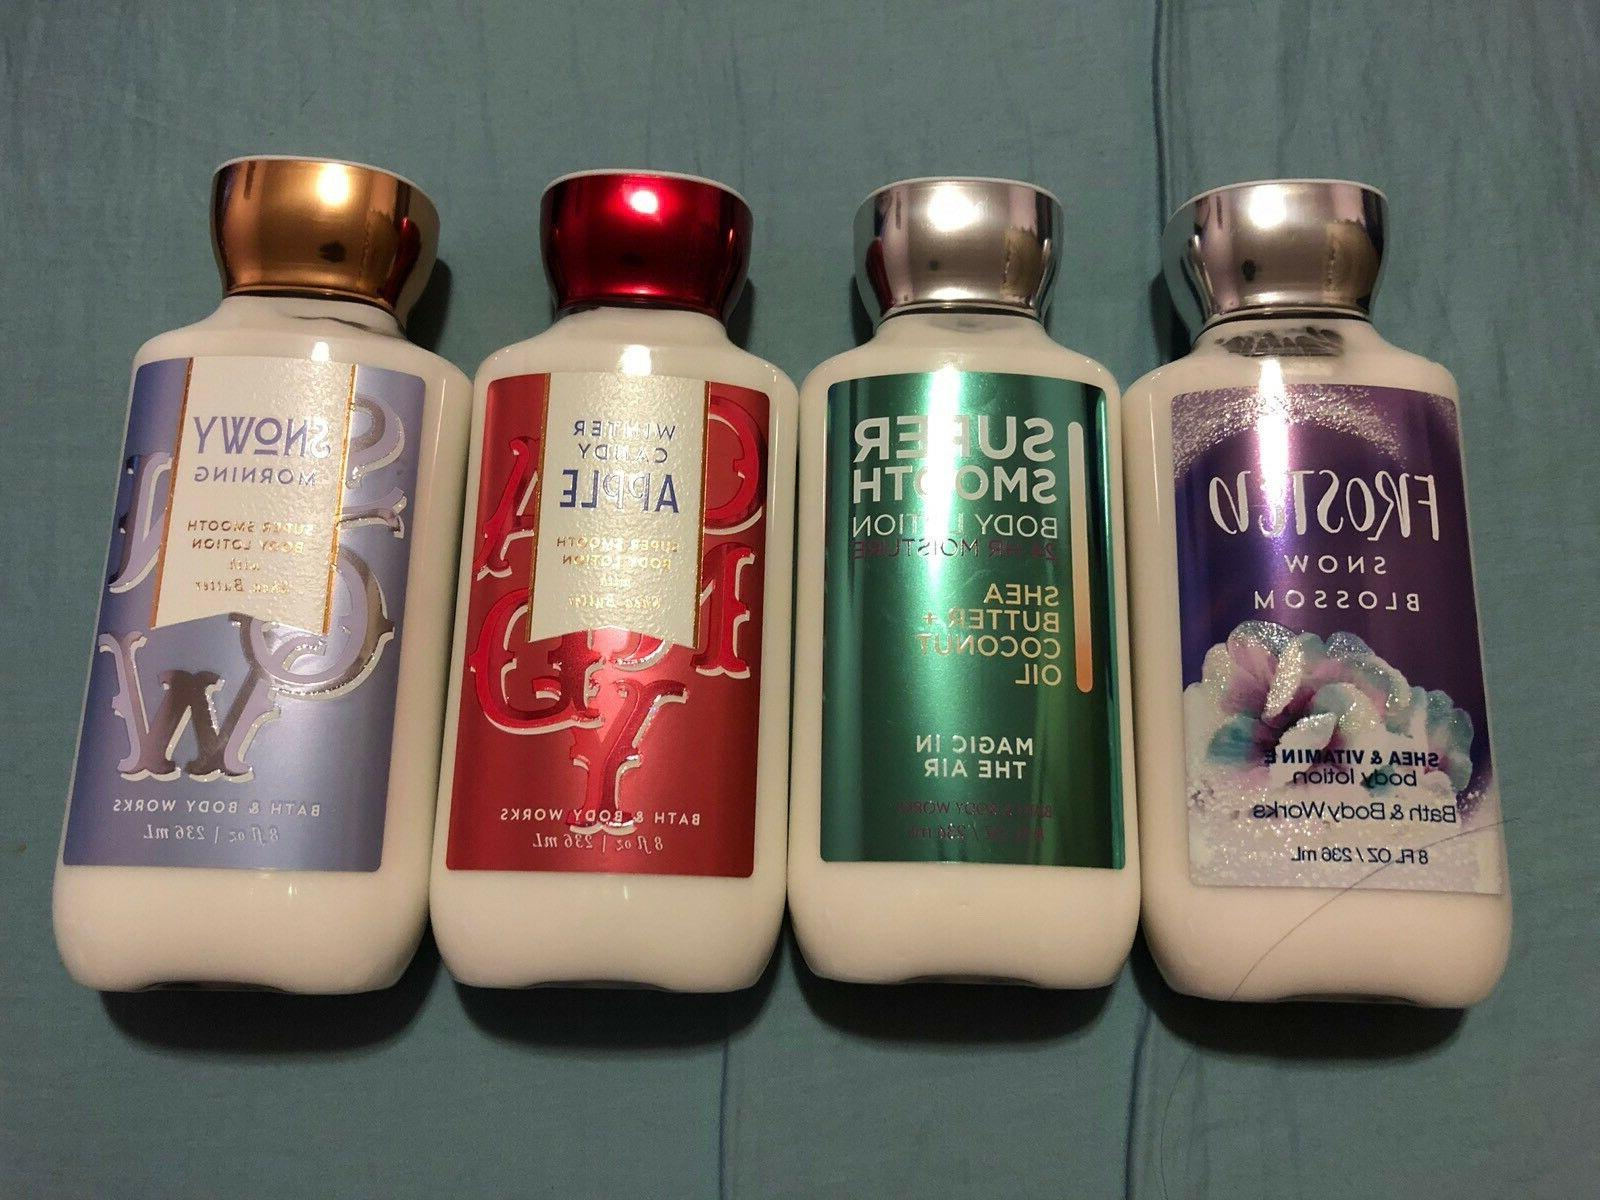 bath and body works 8oz 24 hour